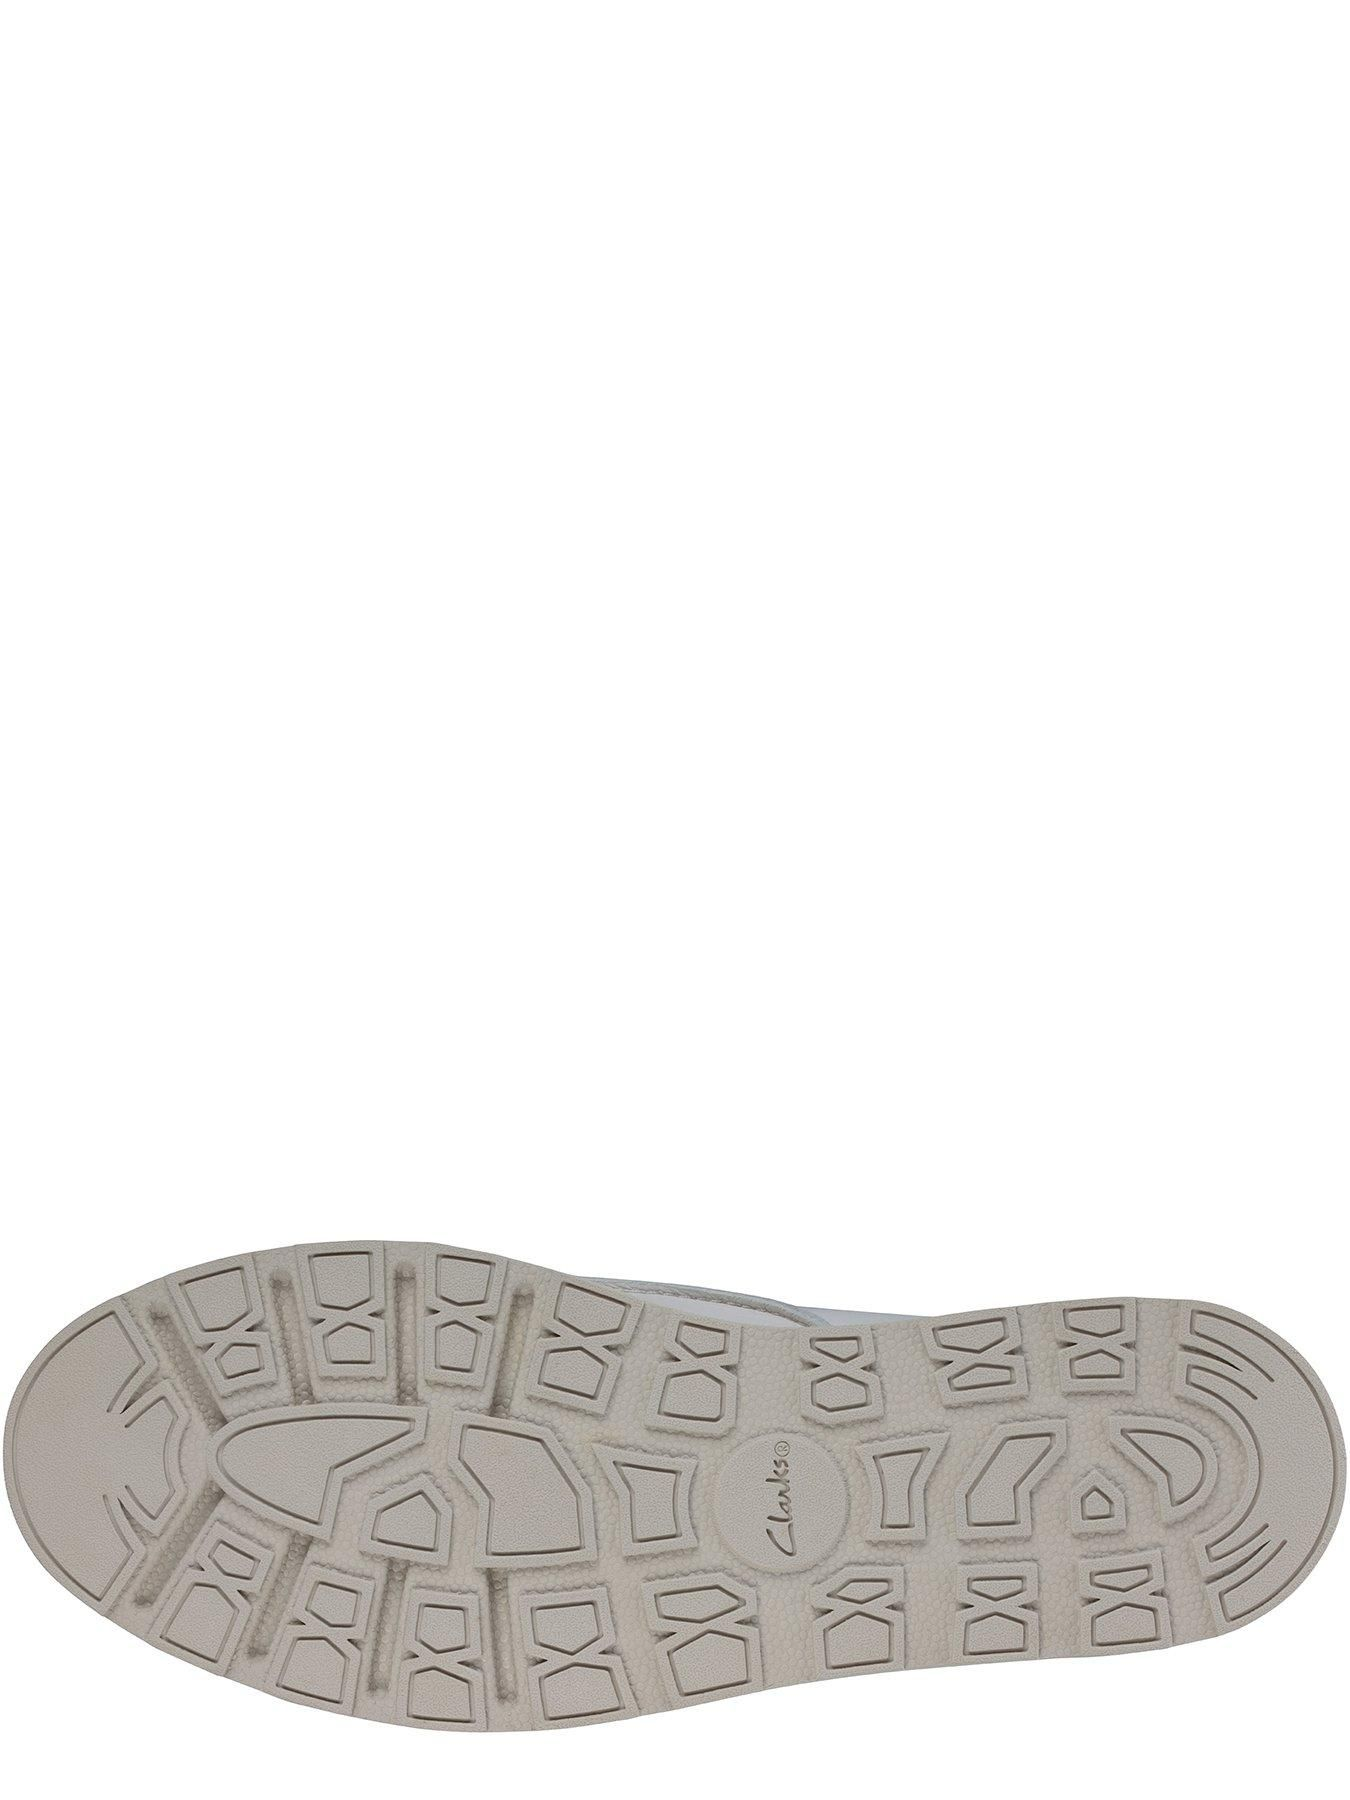 Clarks Trace Walk Leather Wedge